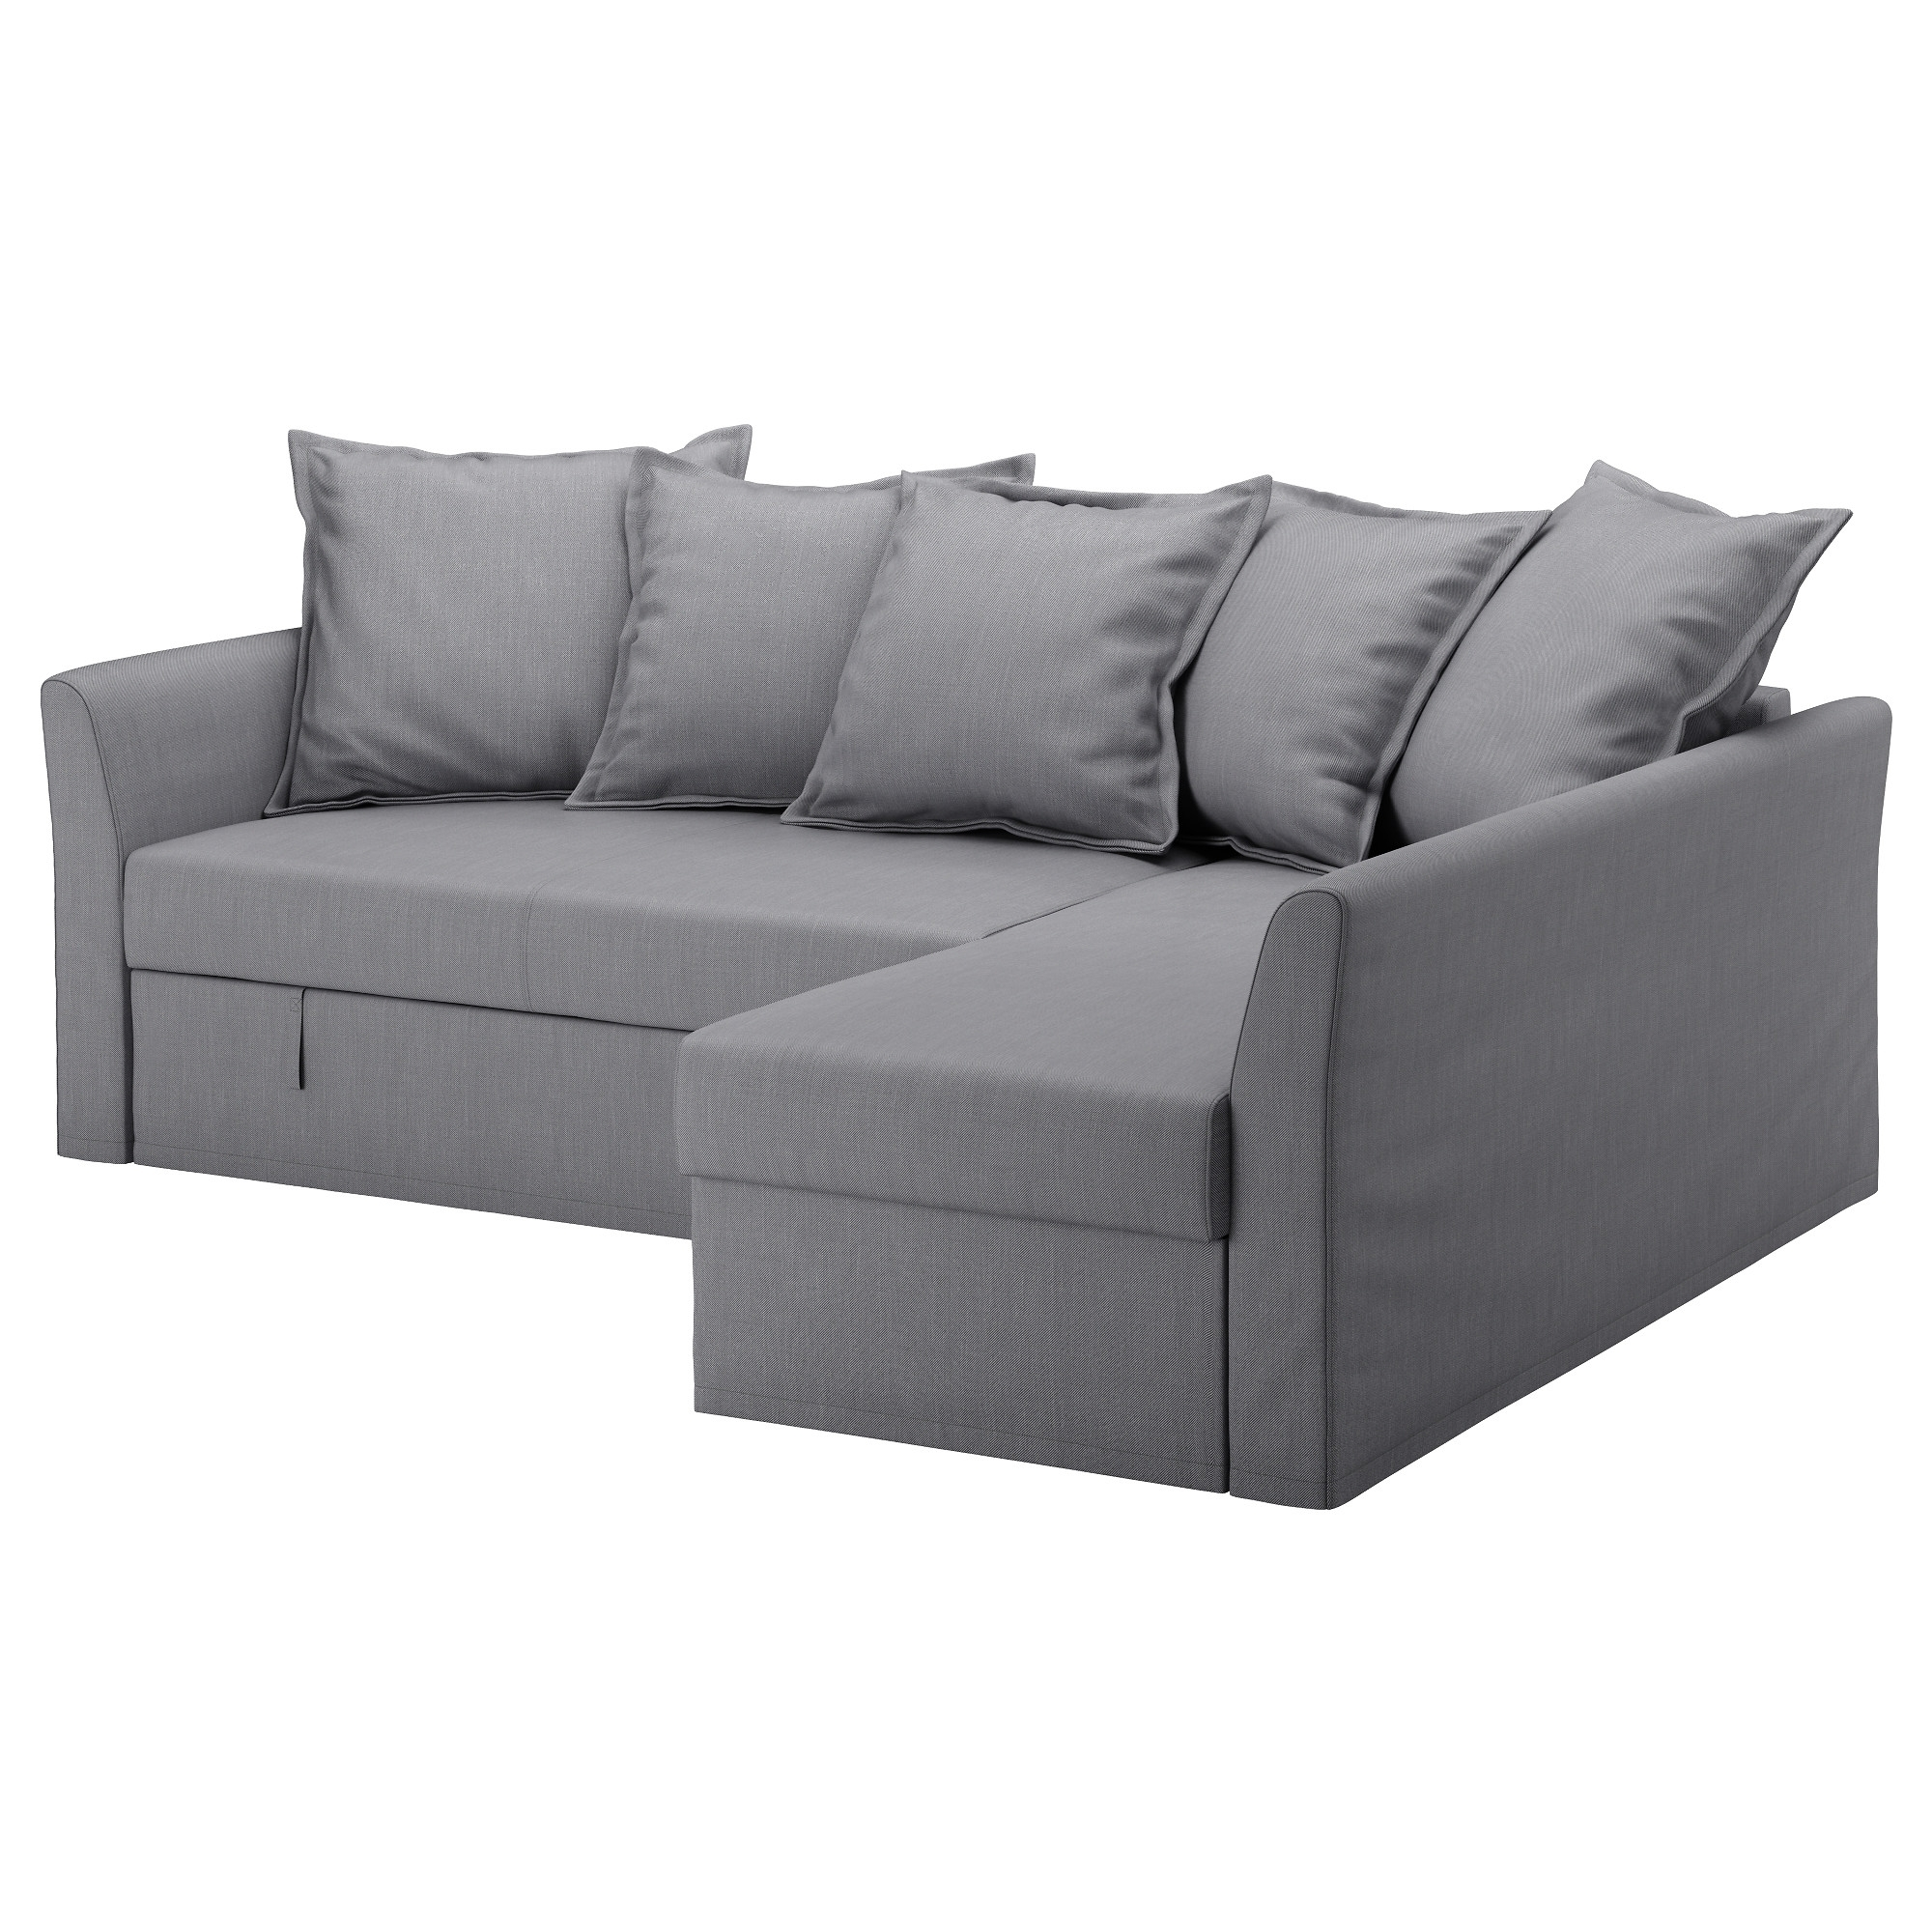 Holmsund Corner Sofa Bed – Nordvalla Beige – Ikea For Ikea Corner Sofas With Storage (View 9 of 10)